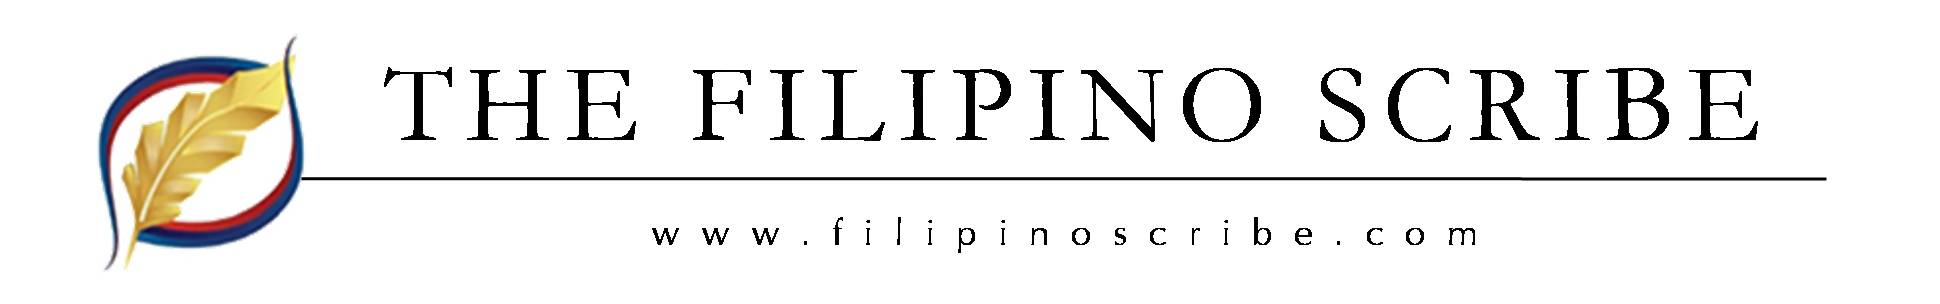 THE FILIPINO SCRIBE